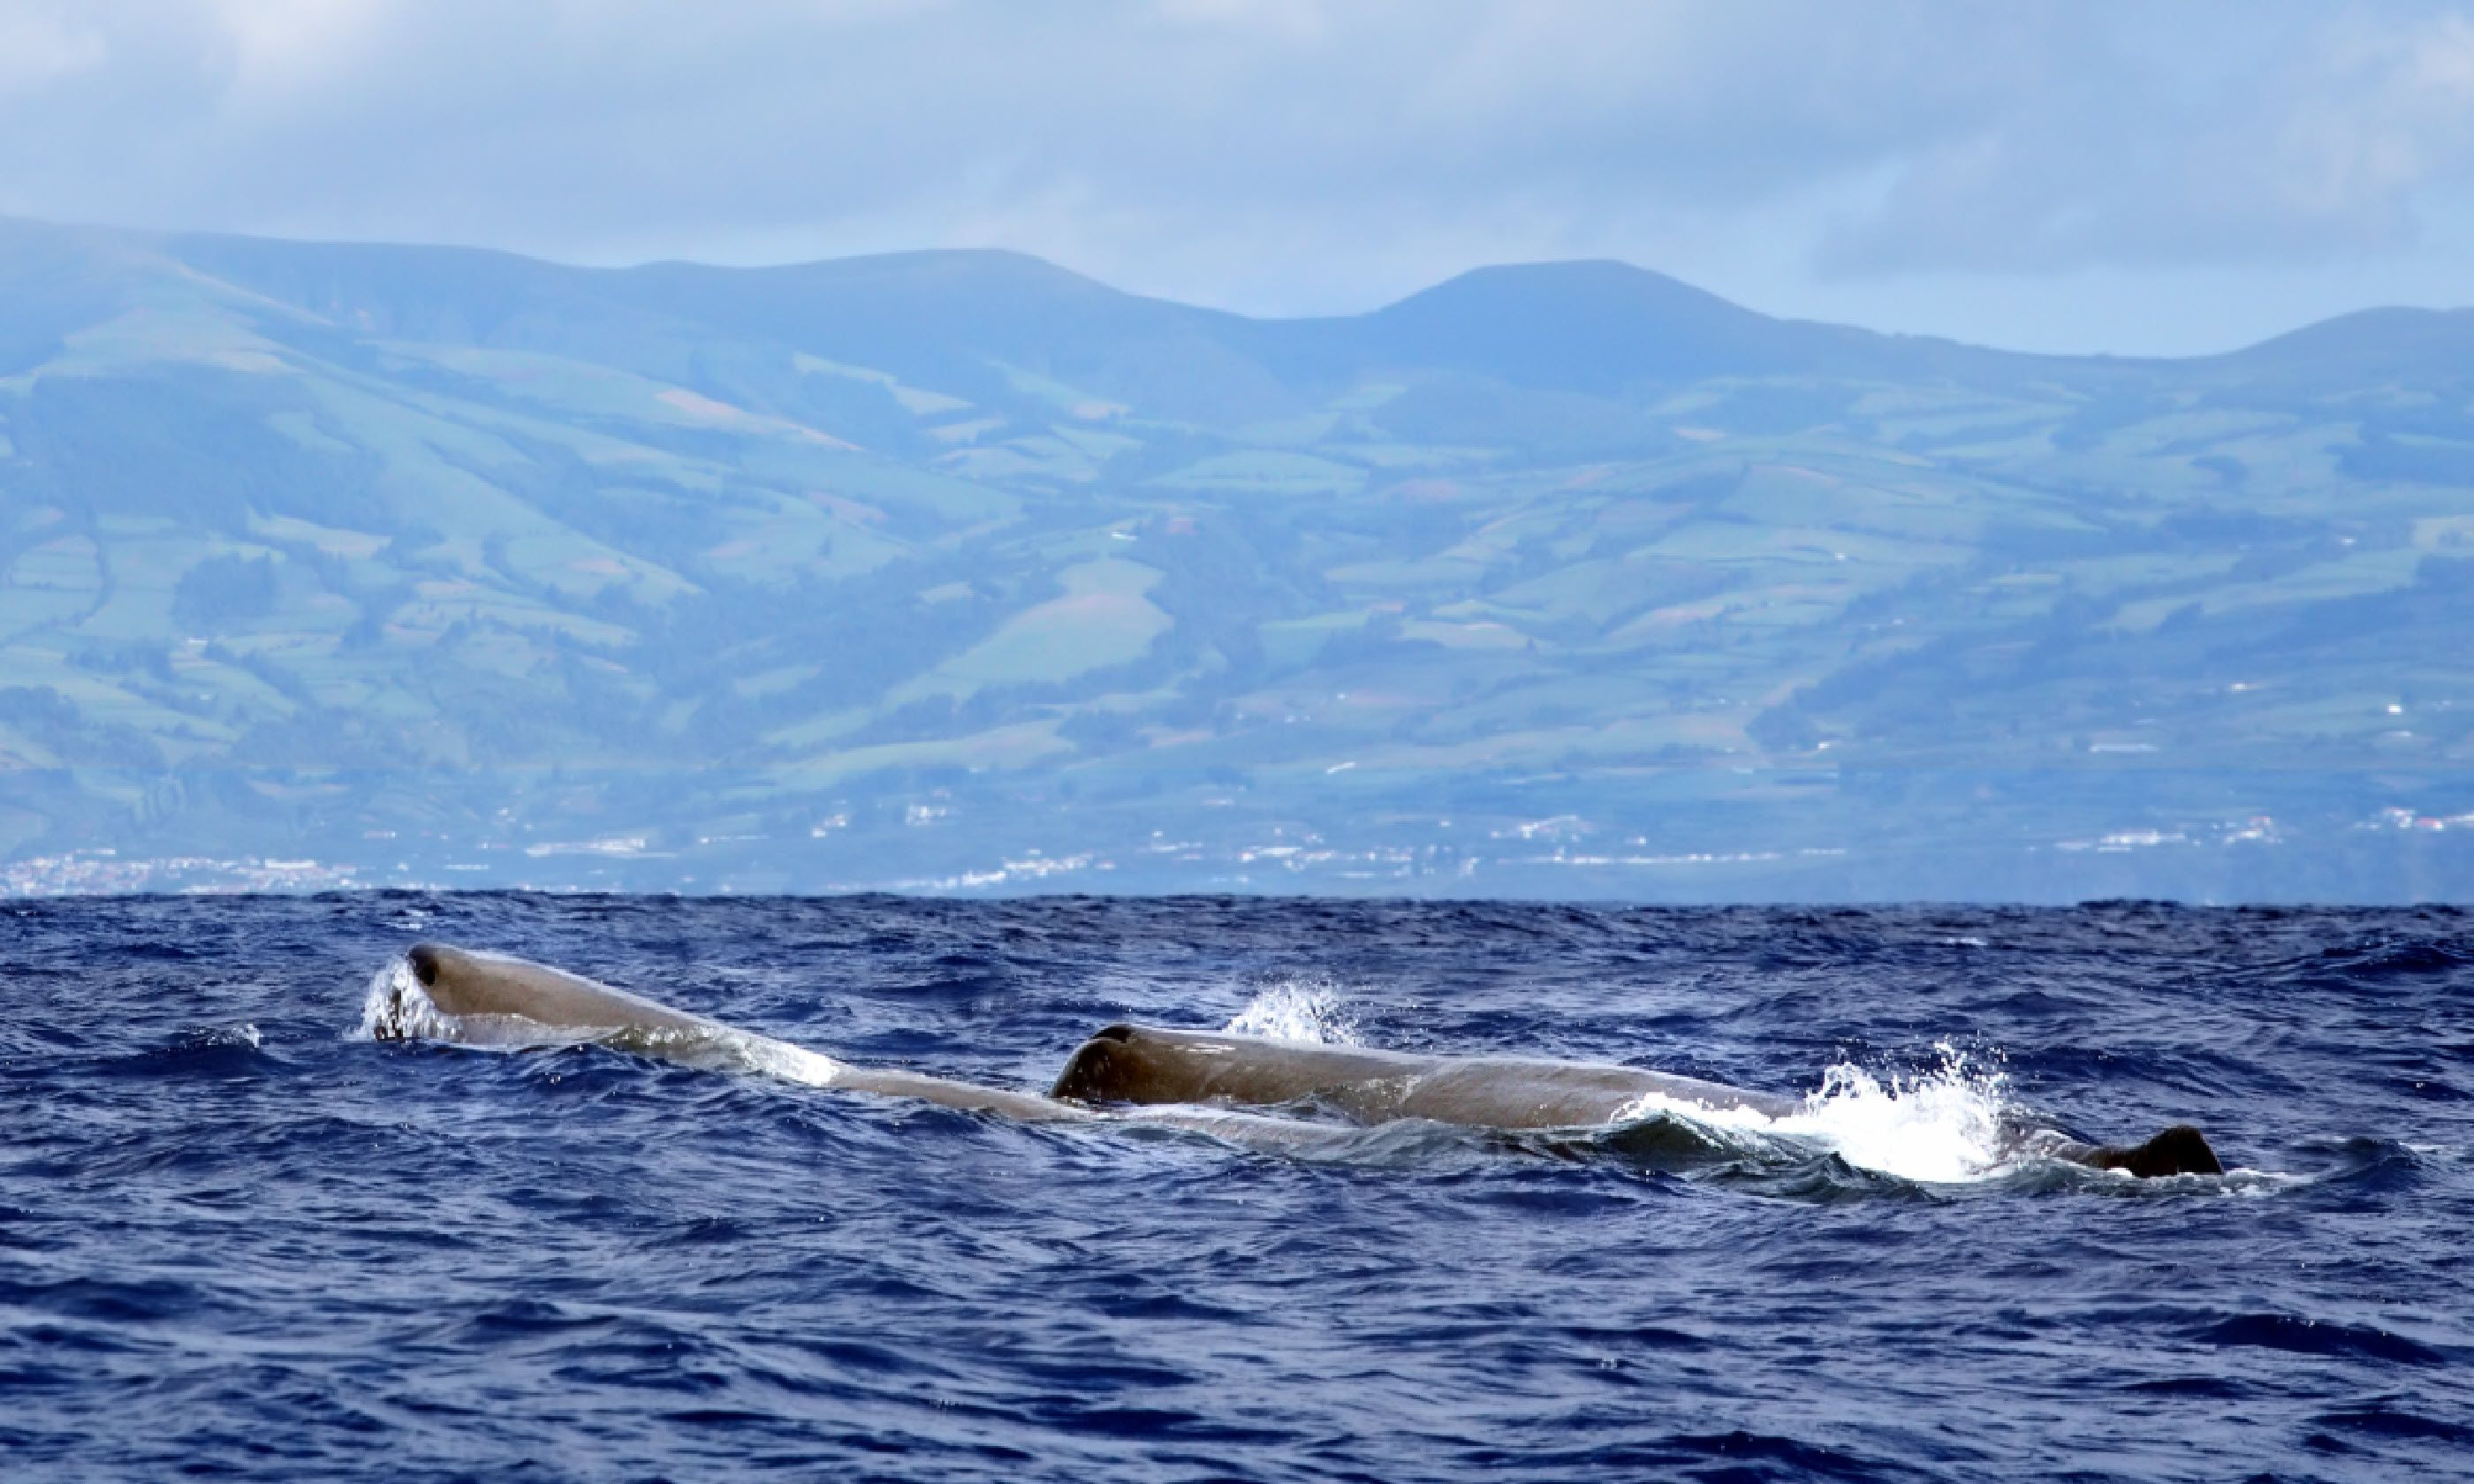 Sperm whales in the Azores (Shutterstock)